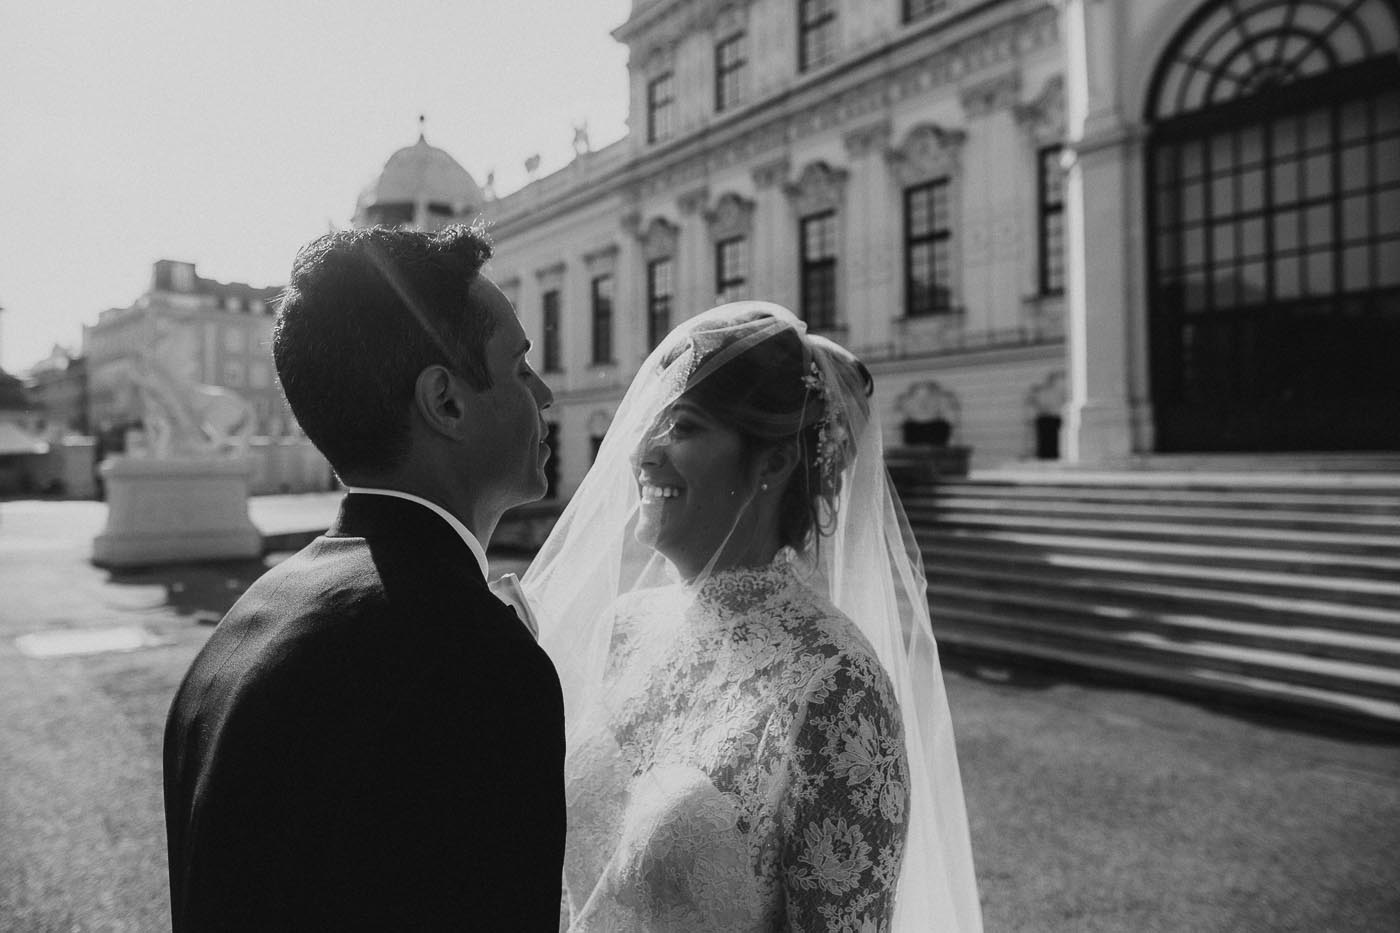 wedding-palais-liechtenstein-vienna-413